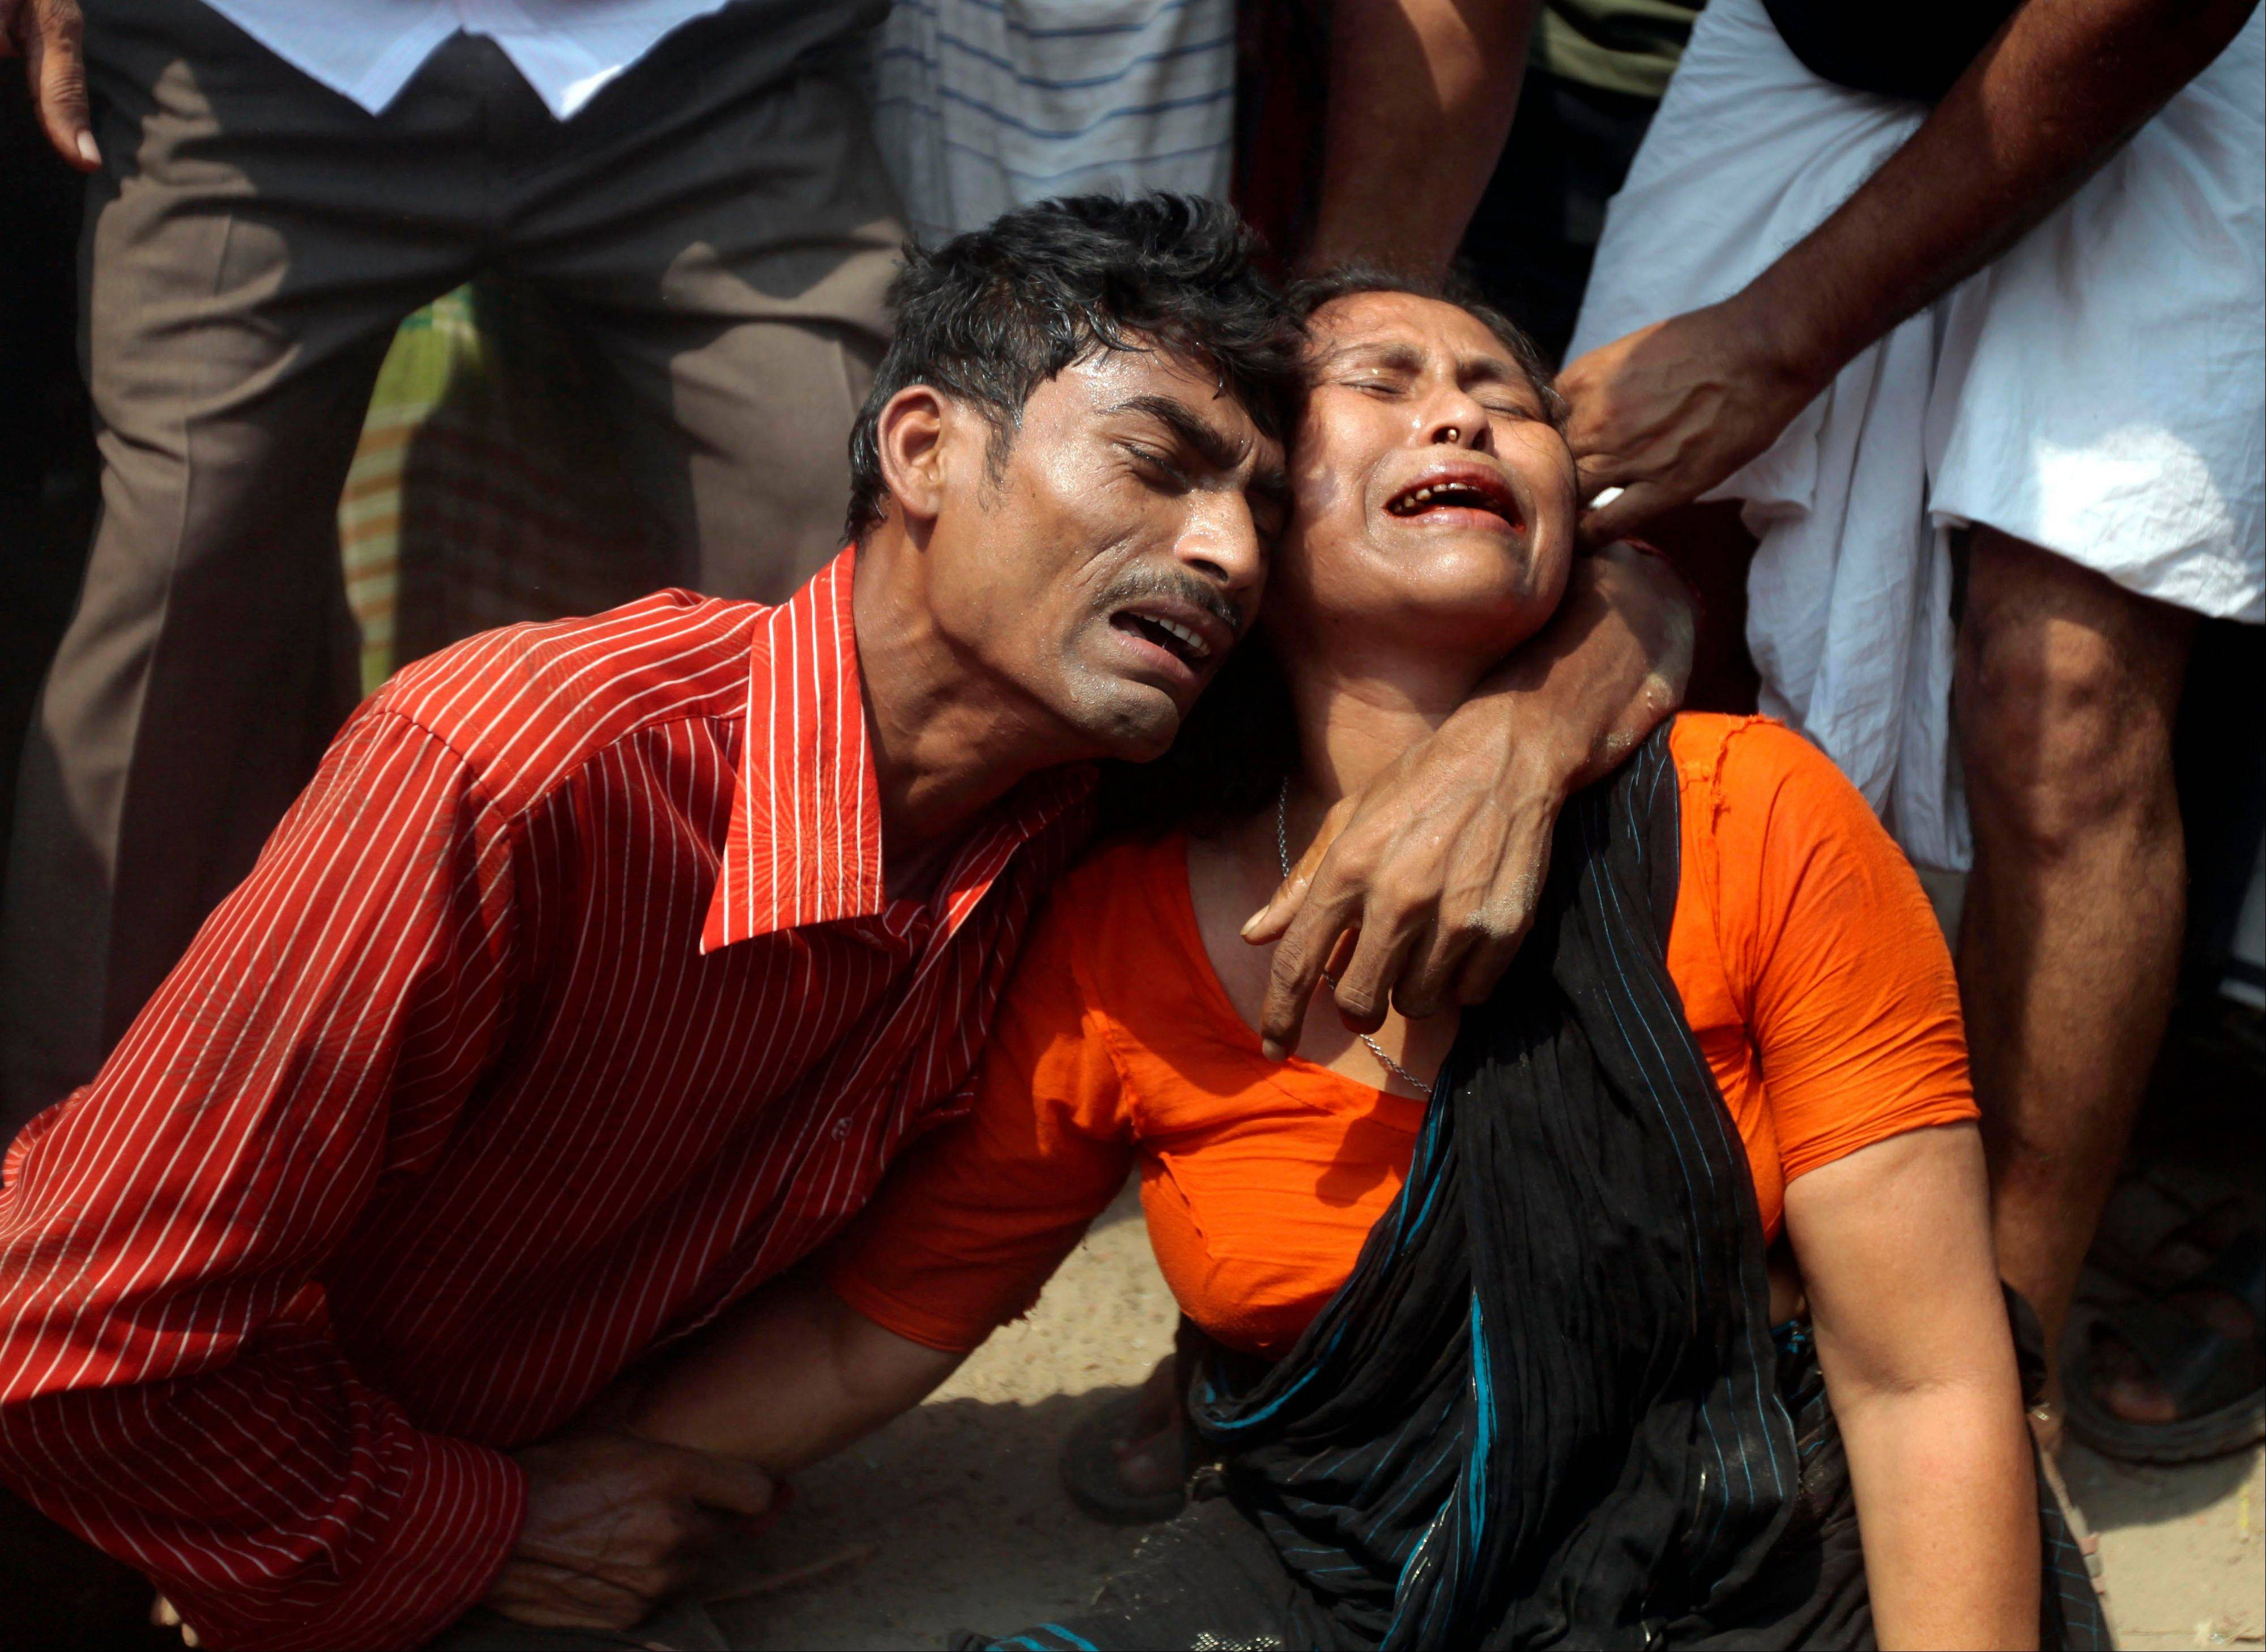 Relatives mourn a victim at the site where an eight-story building housing several garment factories collapsed in Savar, near Dhaka, Bangladesh, Wednesday, April 24, 2013. The building collapsed near Bangladesh's capital Wednesday morning, killing dozens of people and trapping many more in the rubble, officials said.